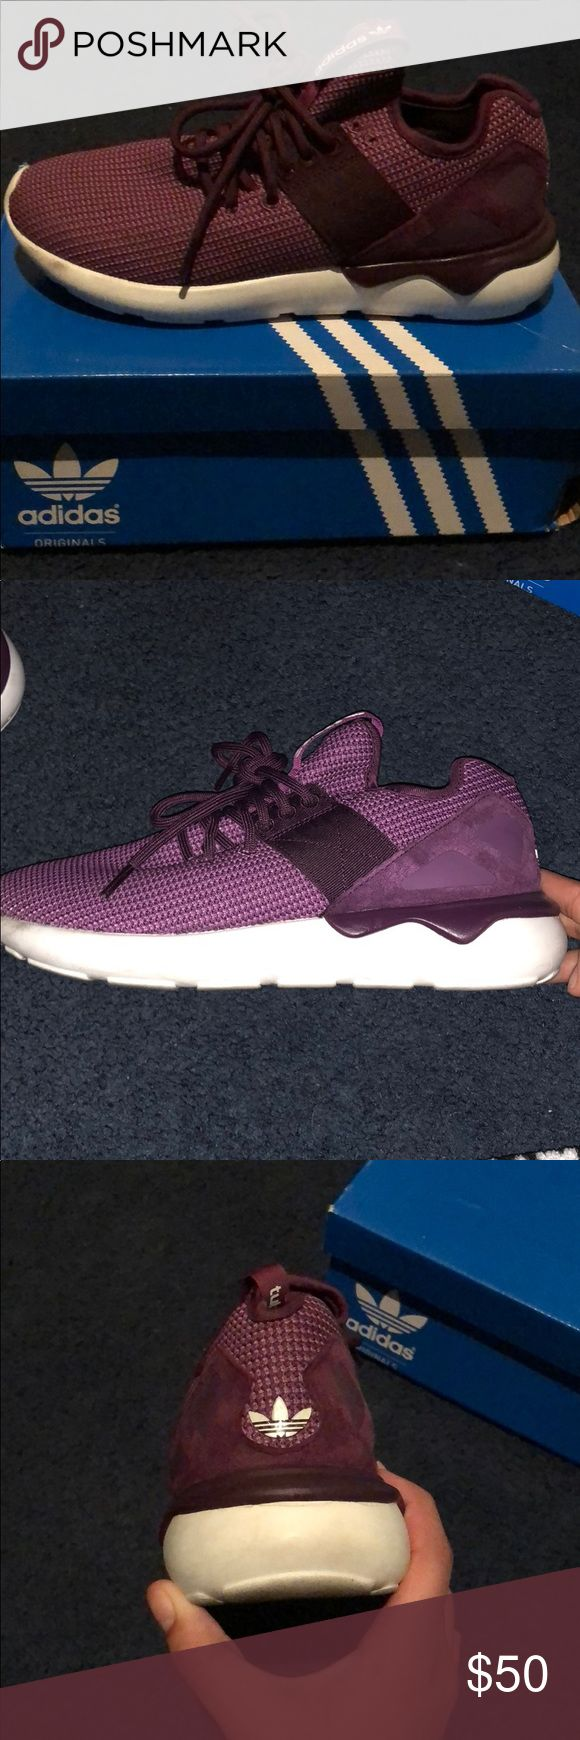 Adidas Tubular Runner Women's Great with a lot of outfits  Worn like 4 times 7/10 adidas Shoes Athletic Shoes